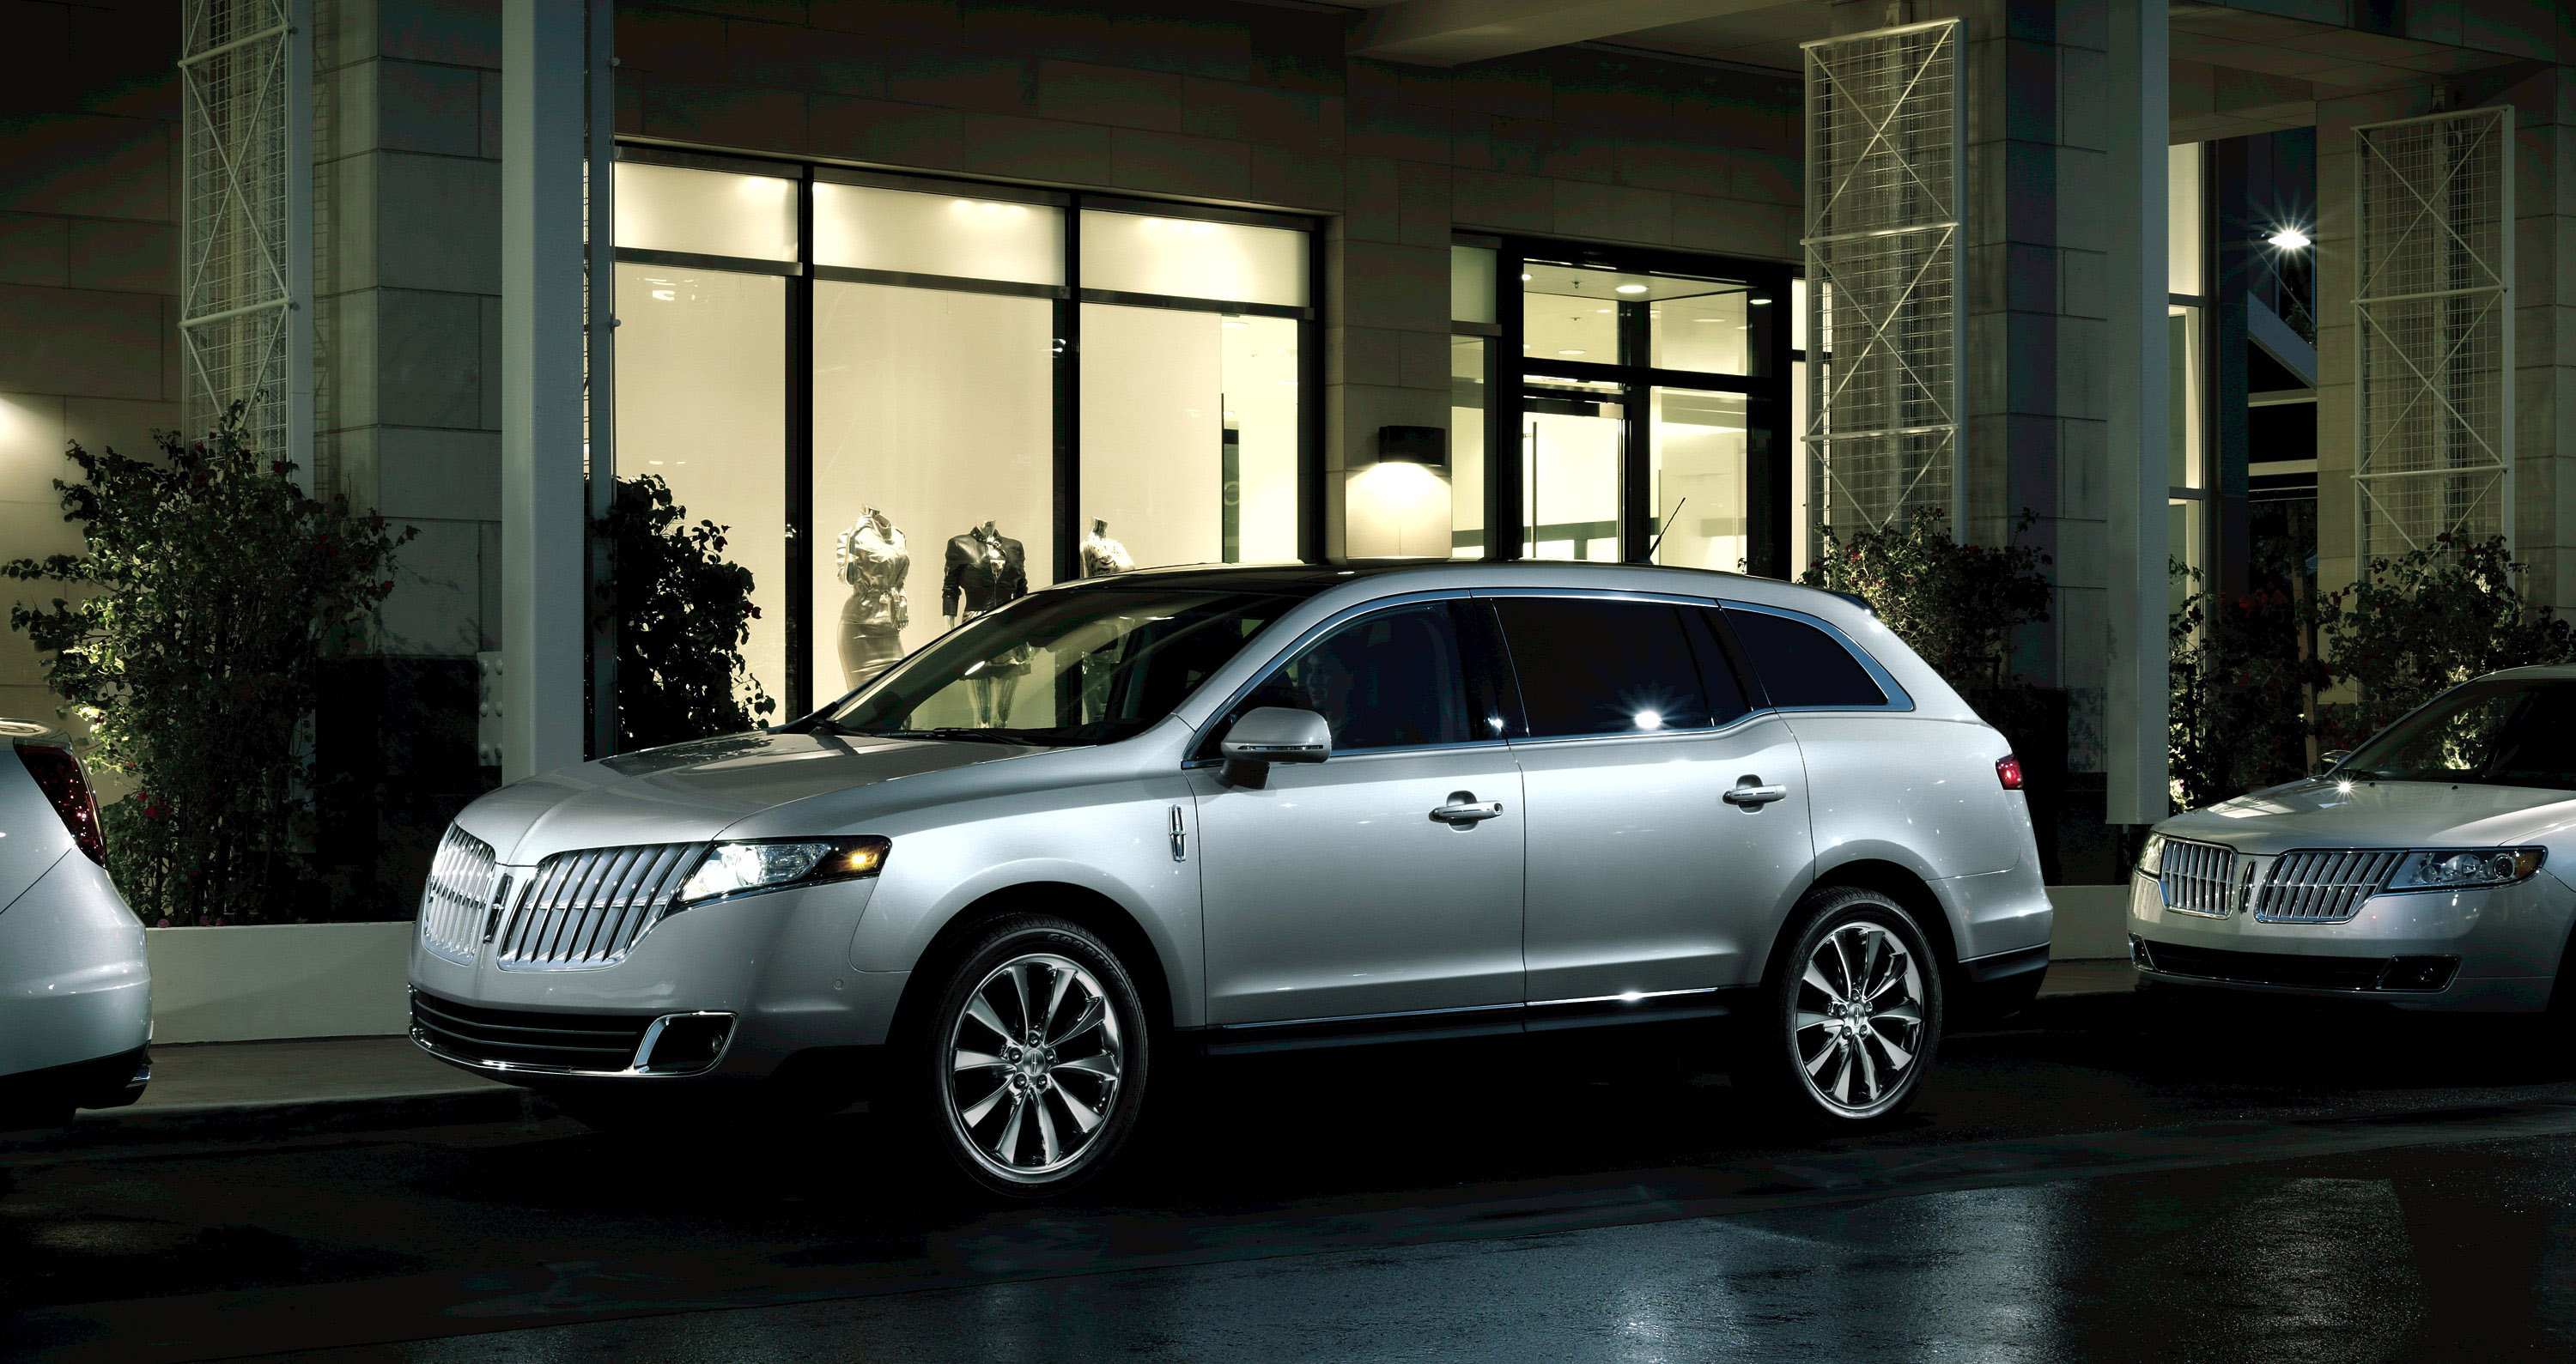 Ford Hopes Limo panies Will Replace Town Car With Lincoln MKT